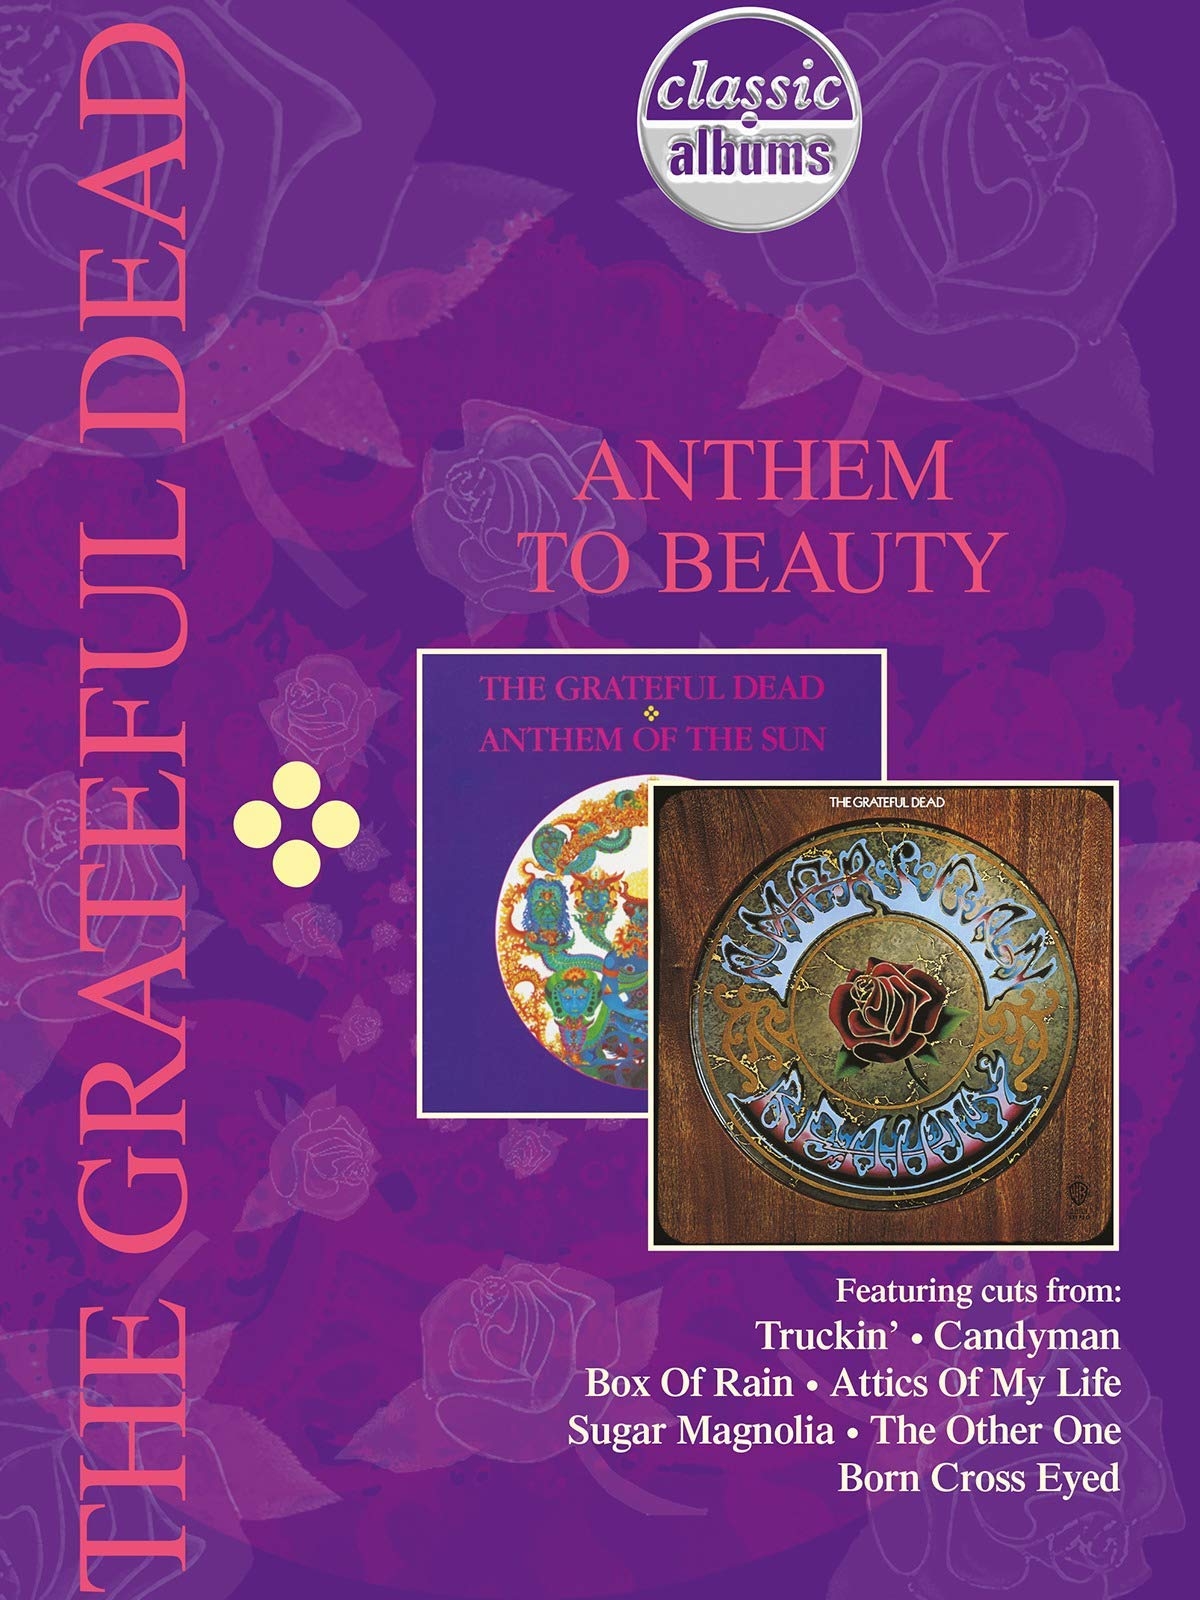 The Grateful Dead - Anthem To Beauty (Classic Album) on Amazon Prime Video UK